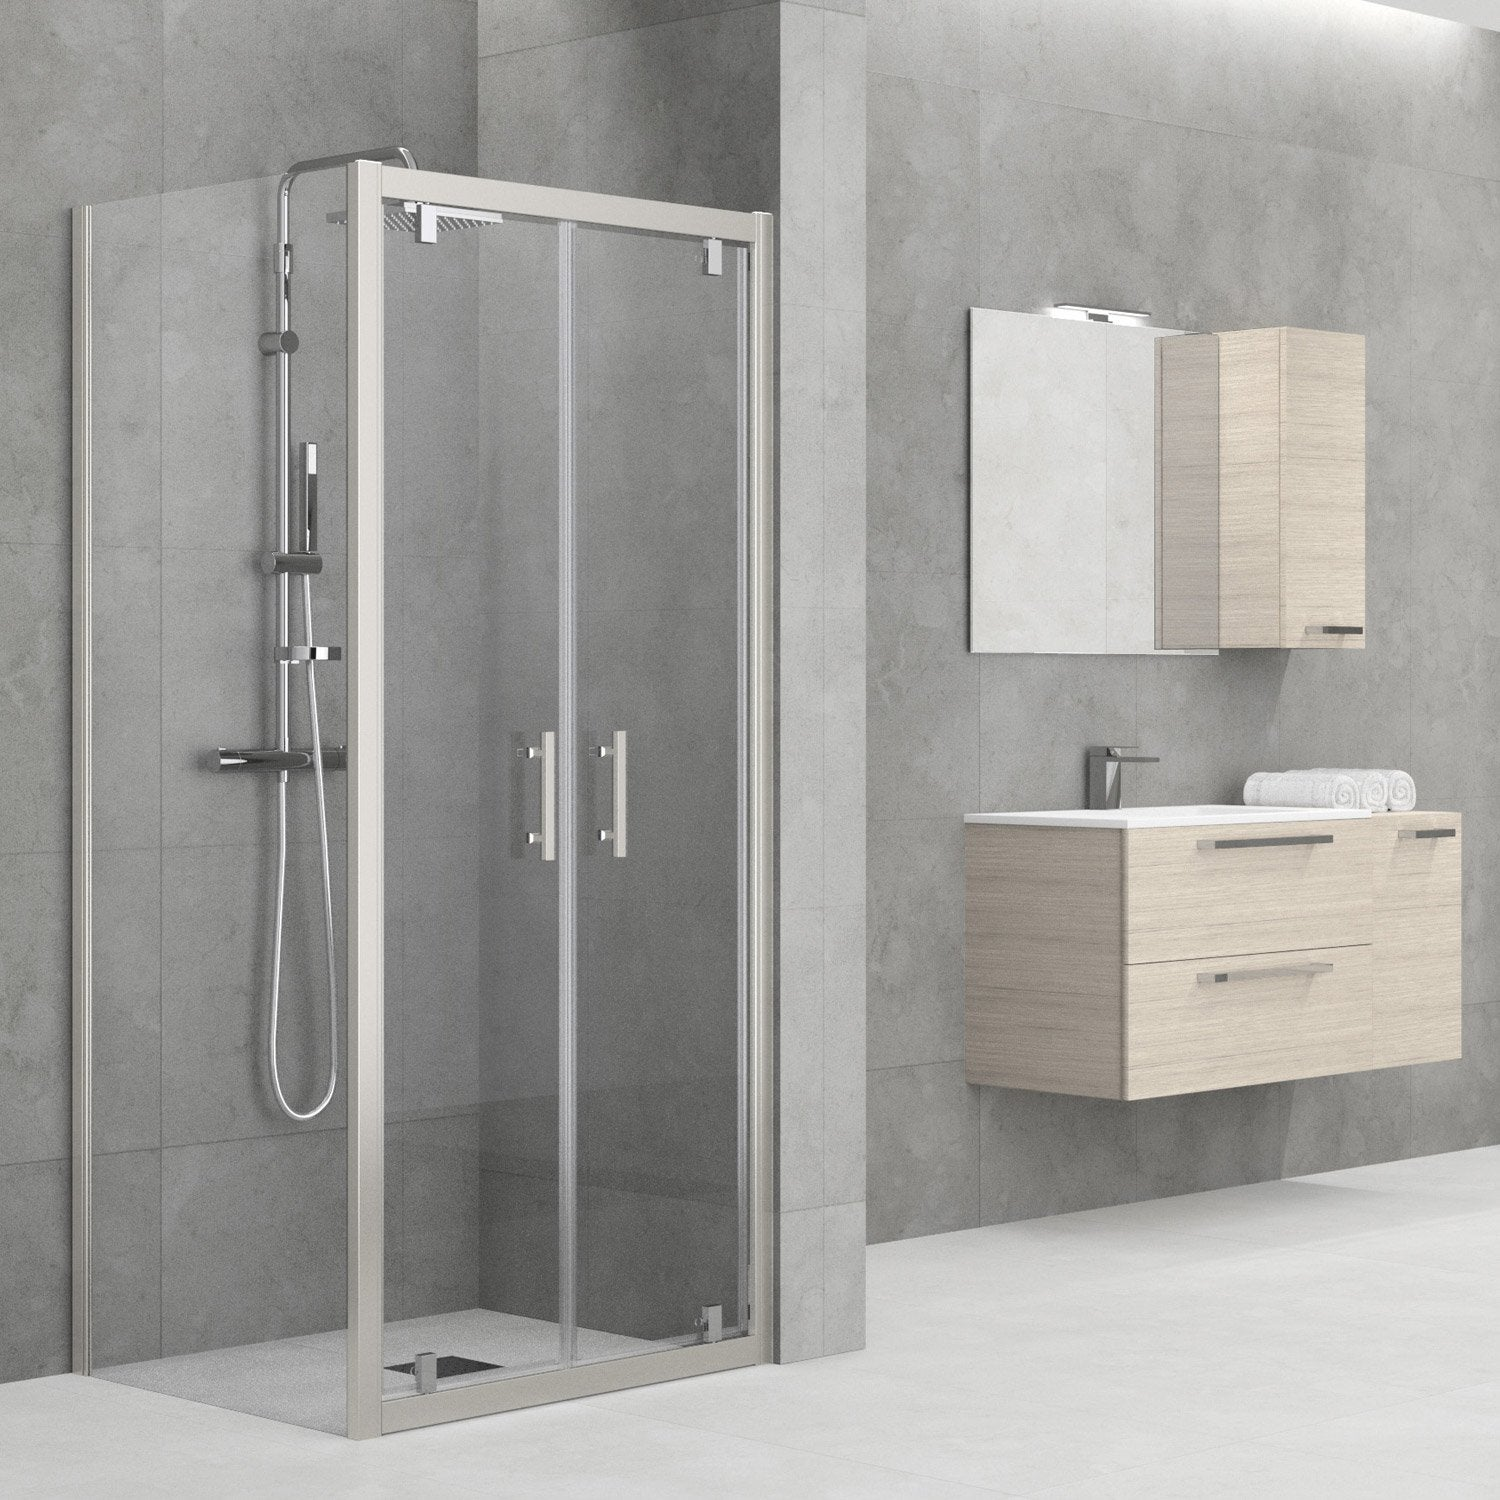 Porte de douche battante 90 96 cm profil chrom elyt leroy merlin for Porte de garage battante